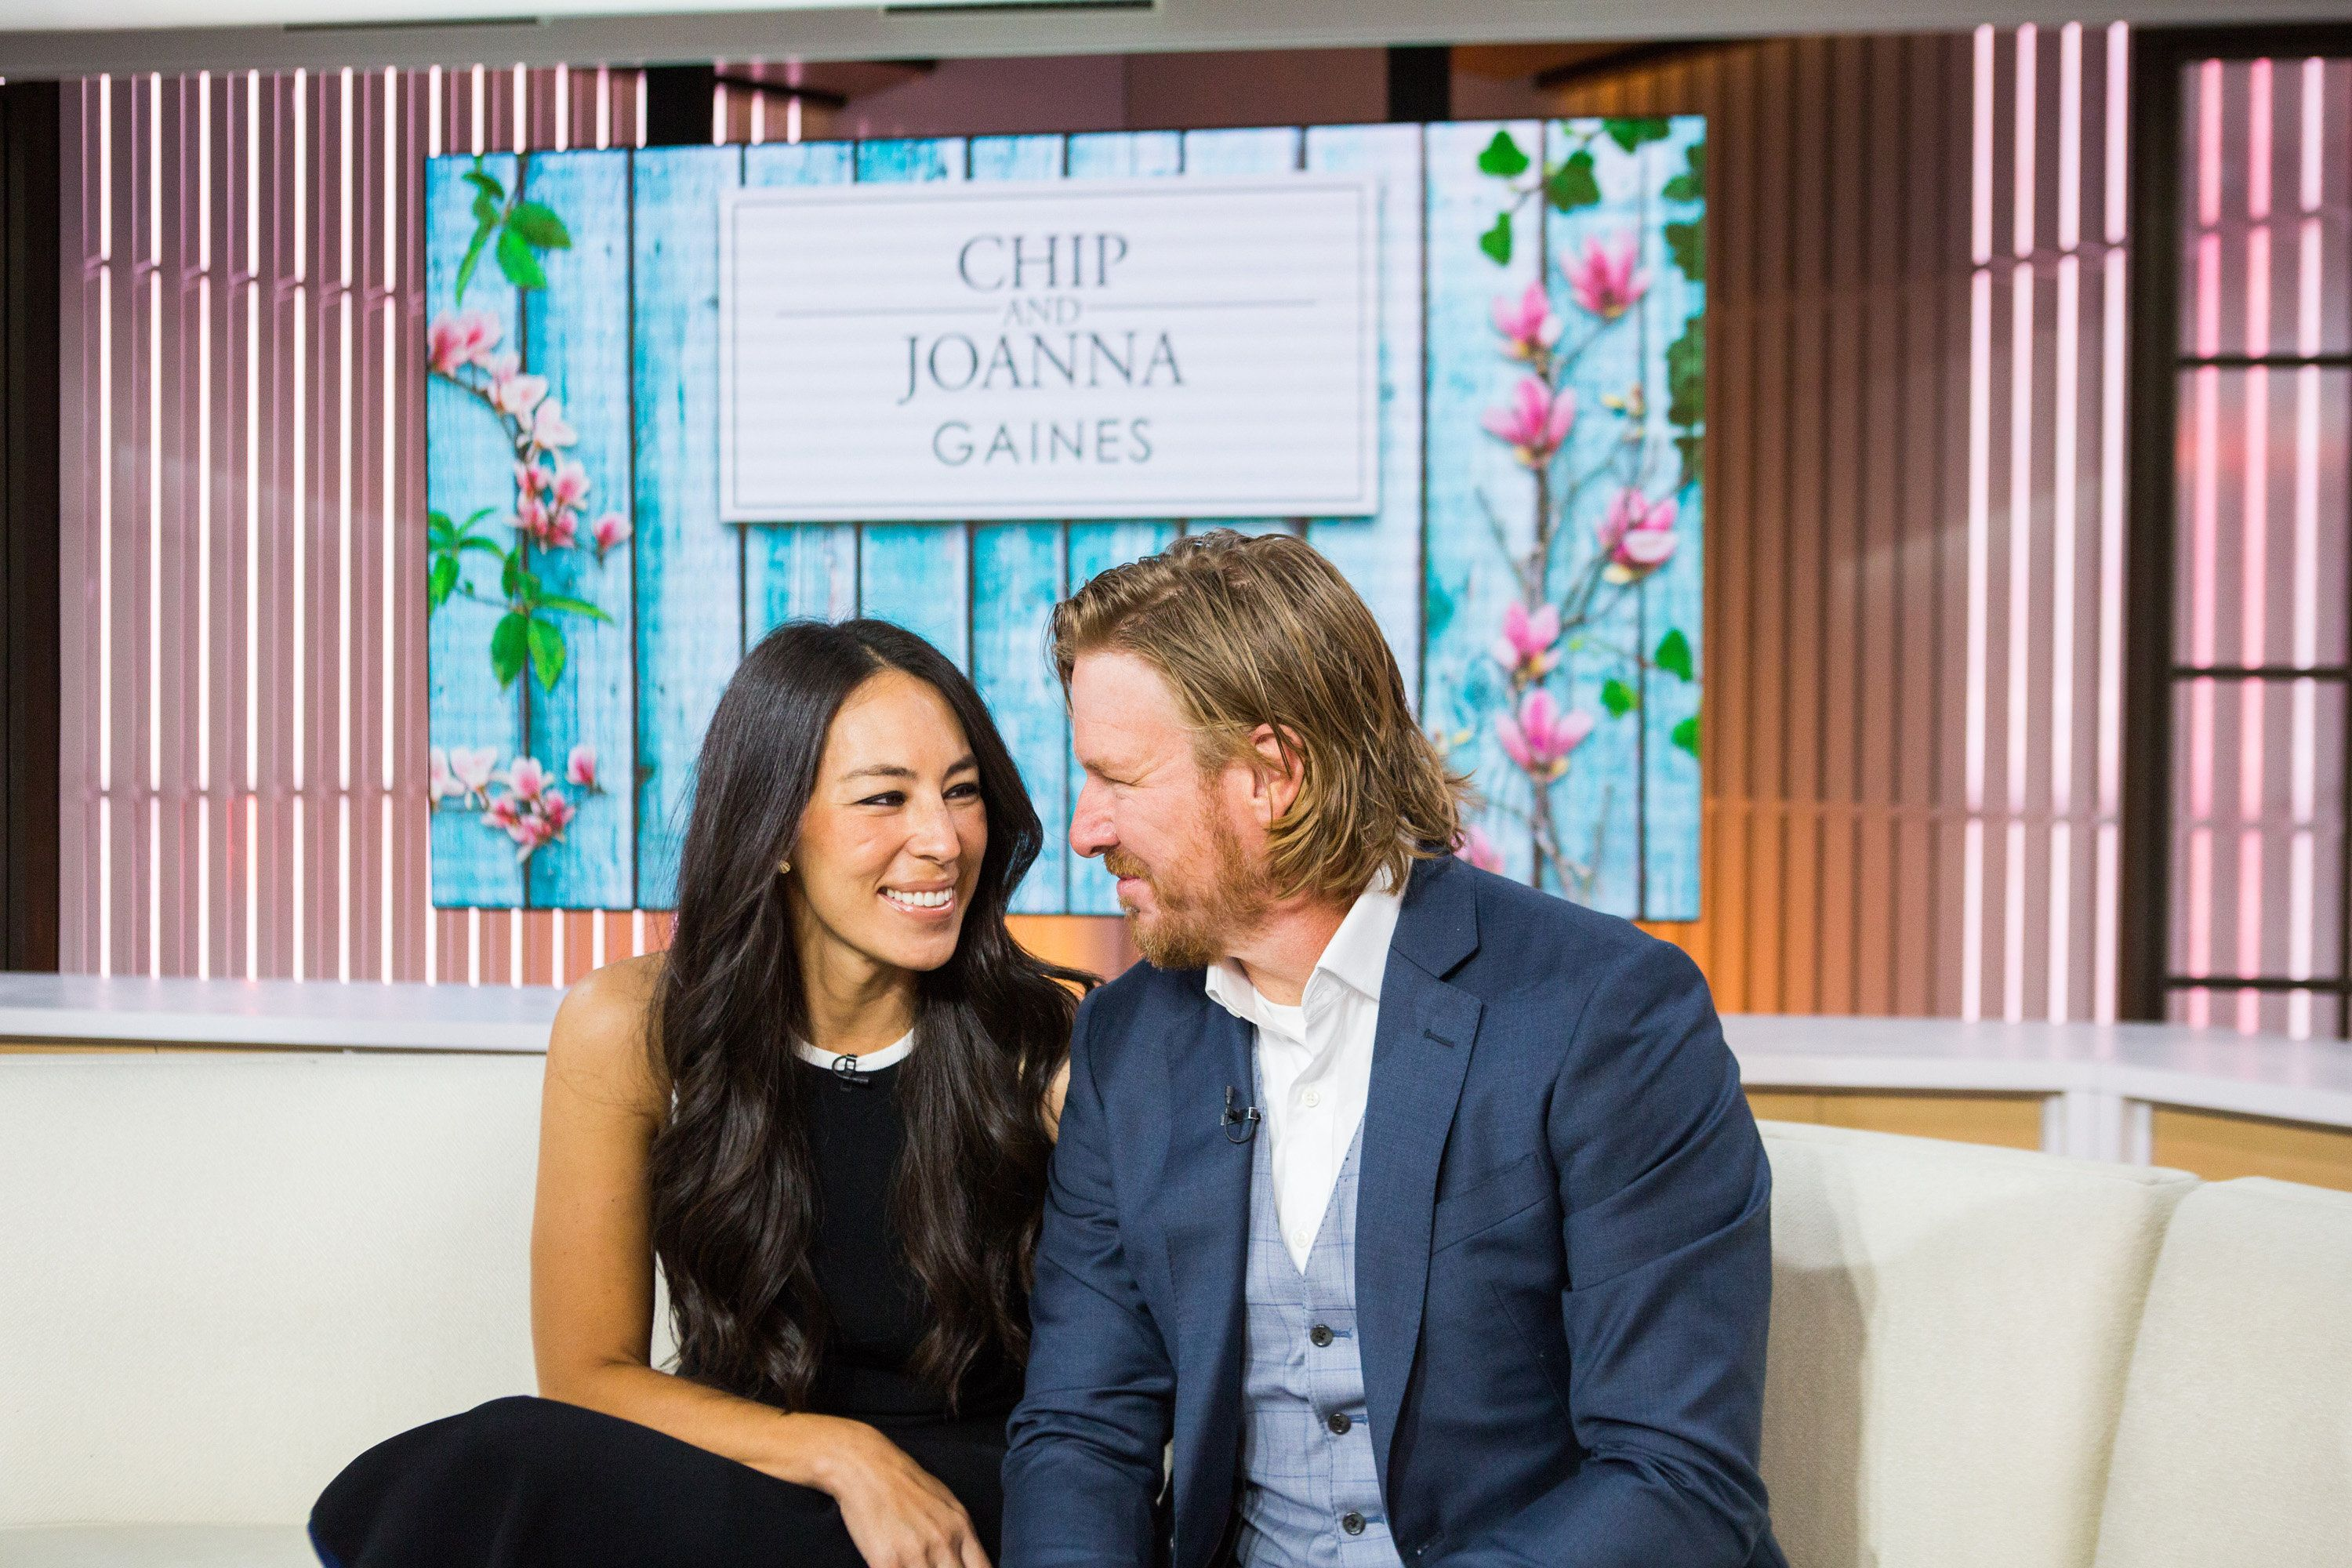 TODAY -- Pictured: Chip and Joanna Gaines  on Tuesday, October 17, 2017 -- (Photo by: Nathan Congleton/NBC/NBCU Photo Bank via Getty Images)